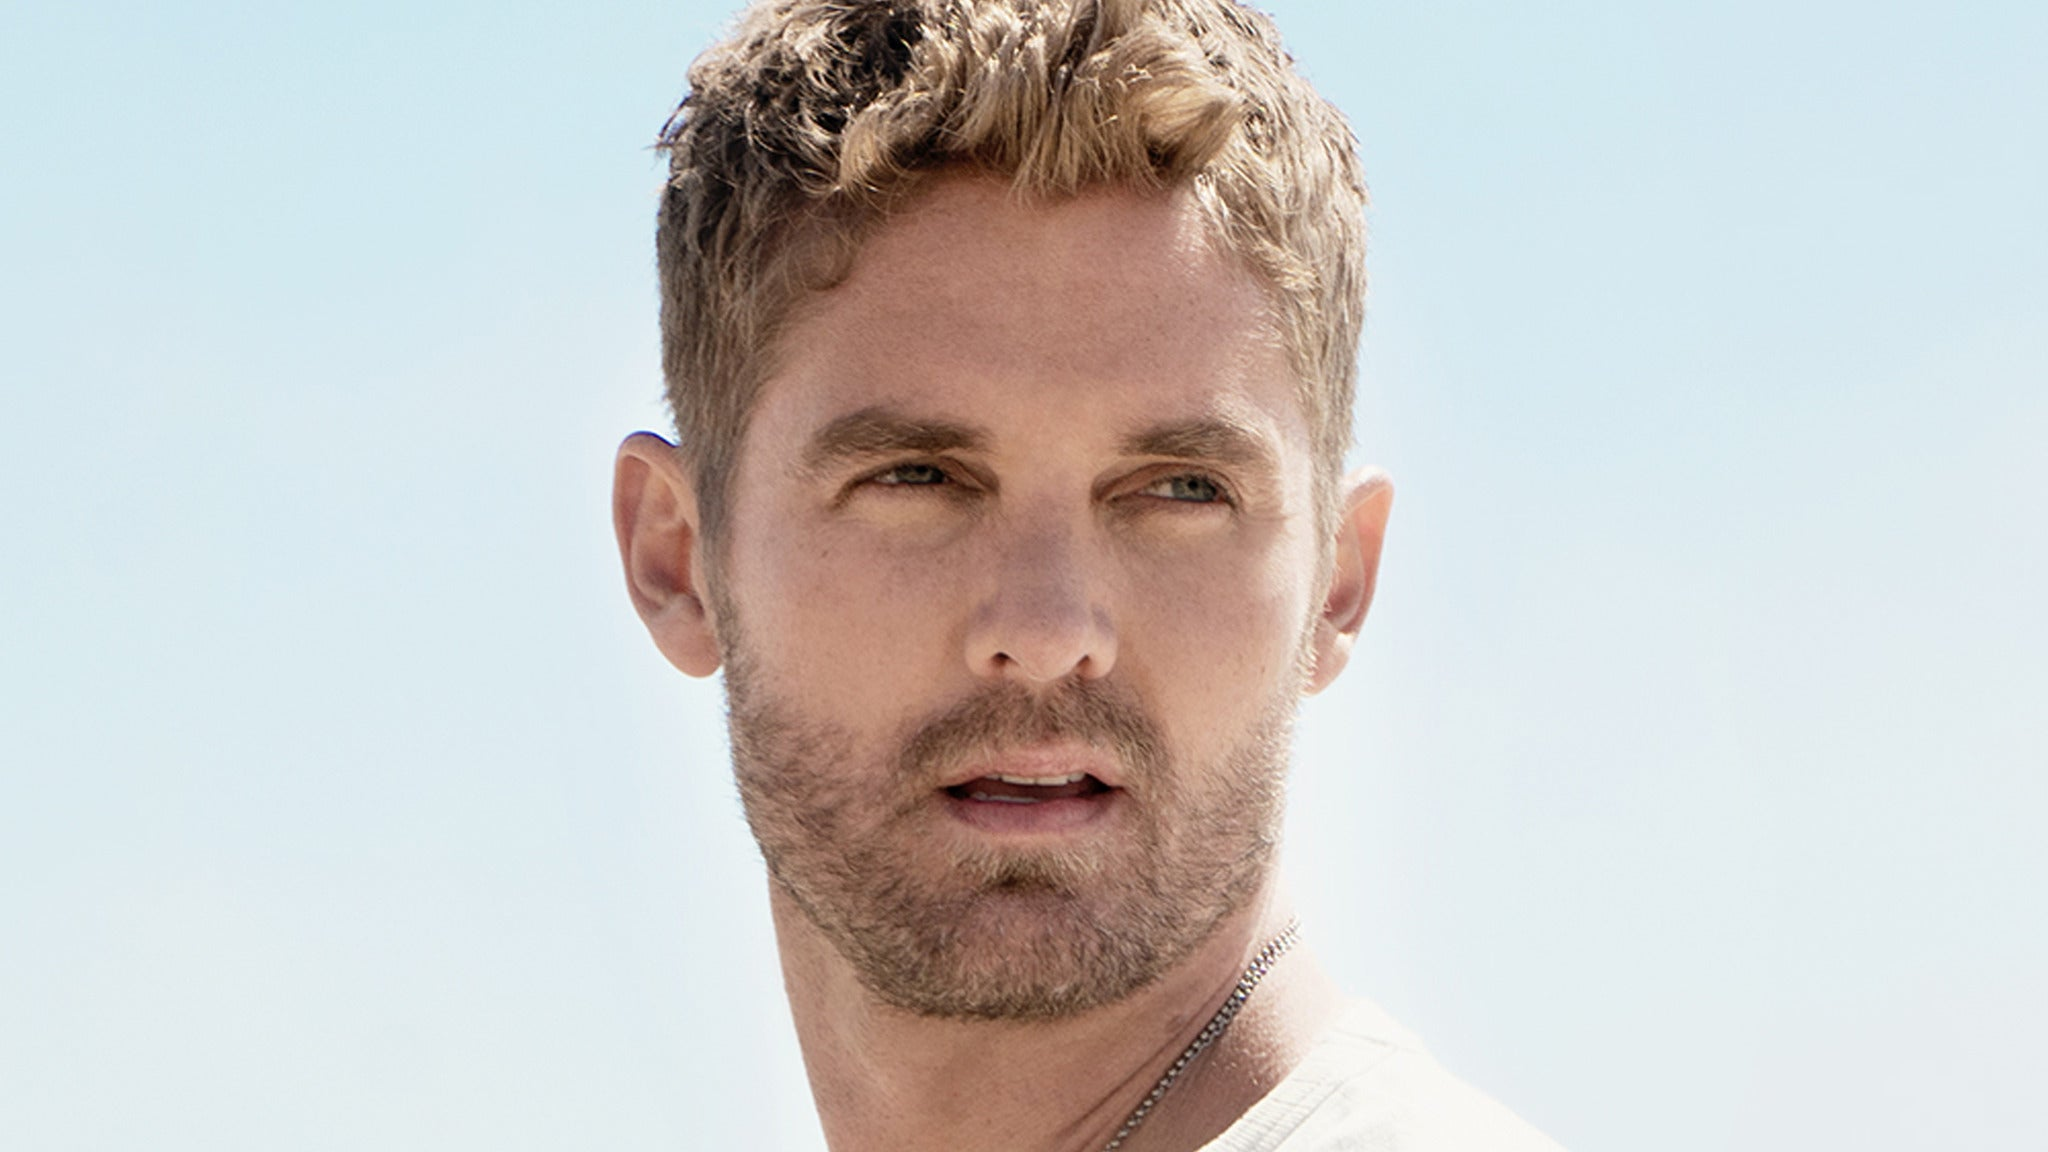 Brett Young: Walgreens Gridiron Grill-Off Food, Wine & Music Festival